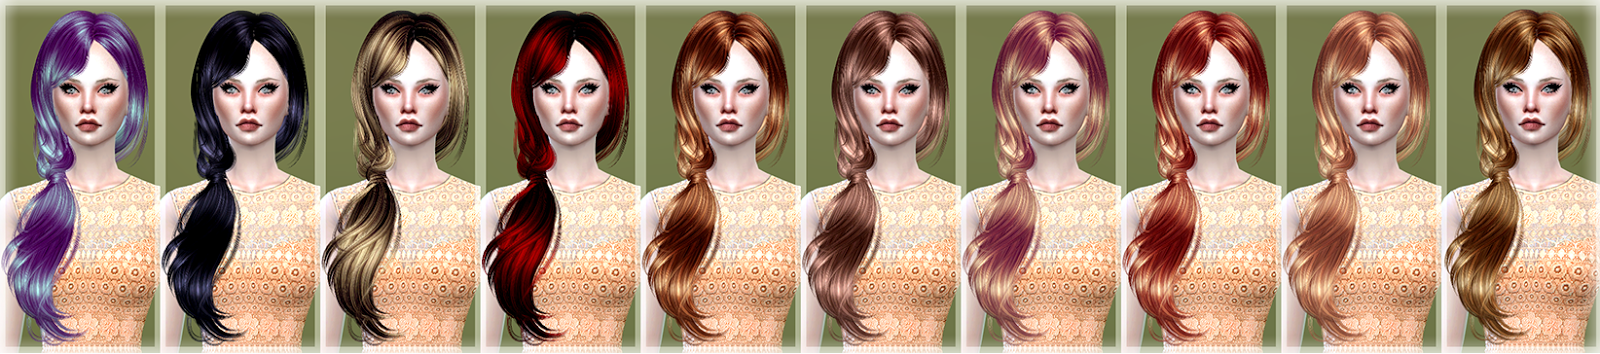 Barbara Hair Retexture by JenniSims